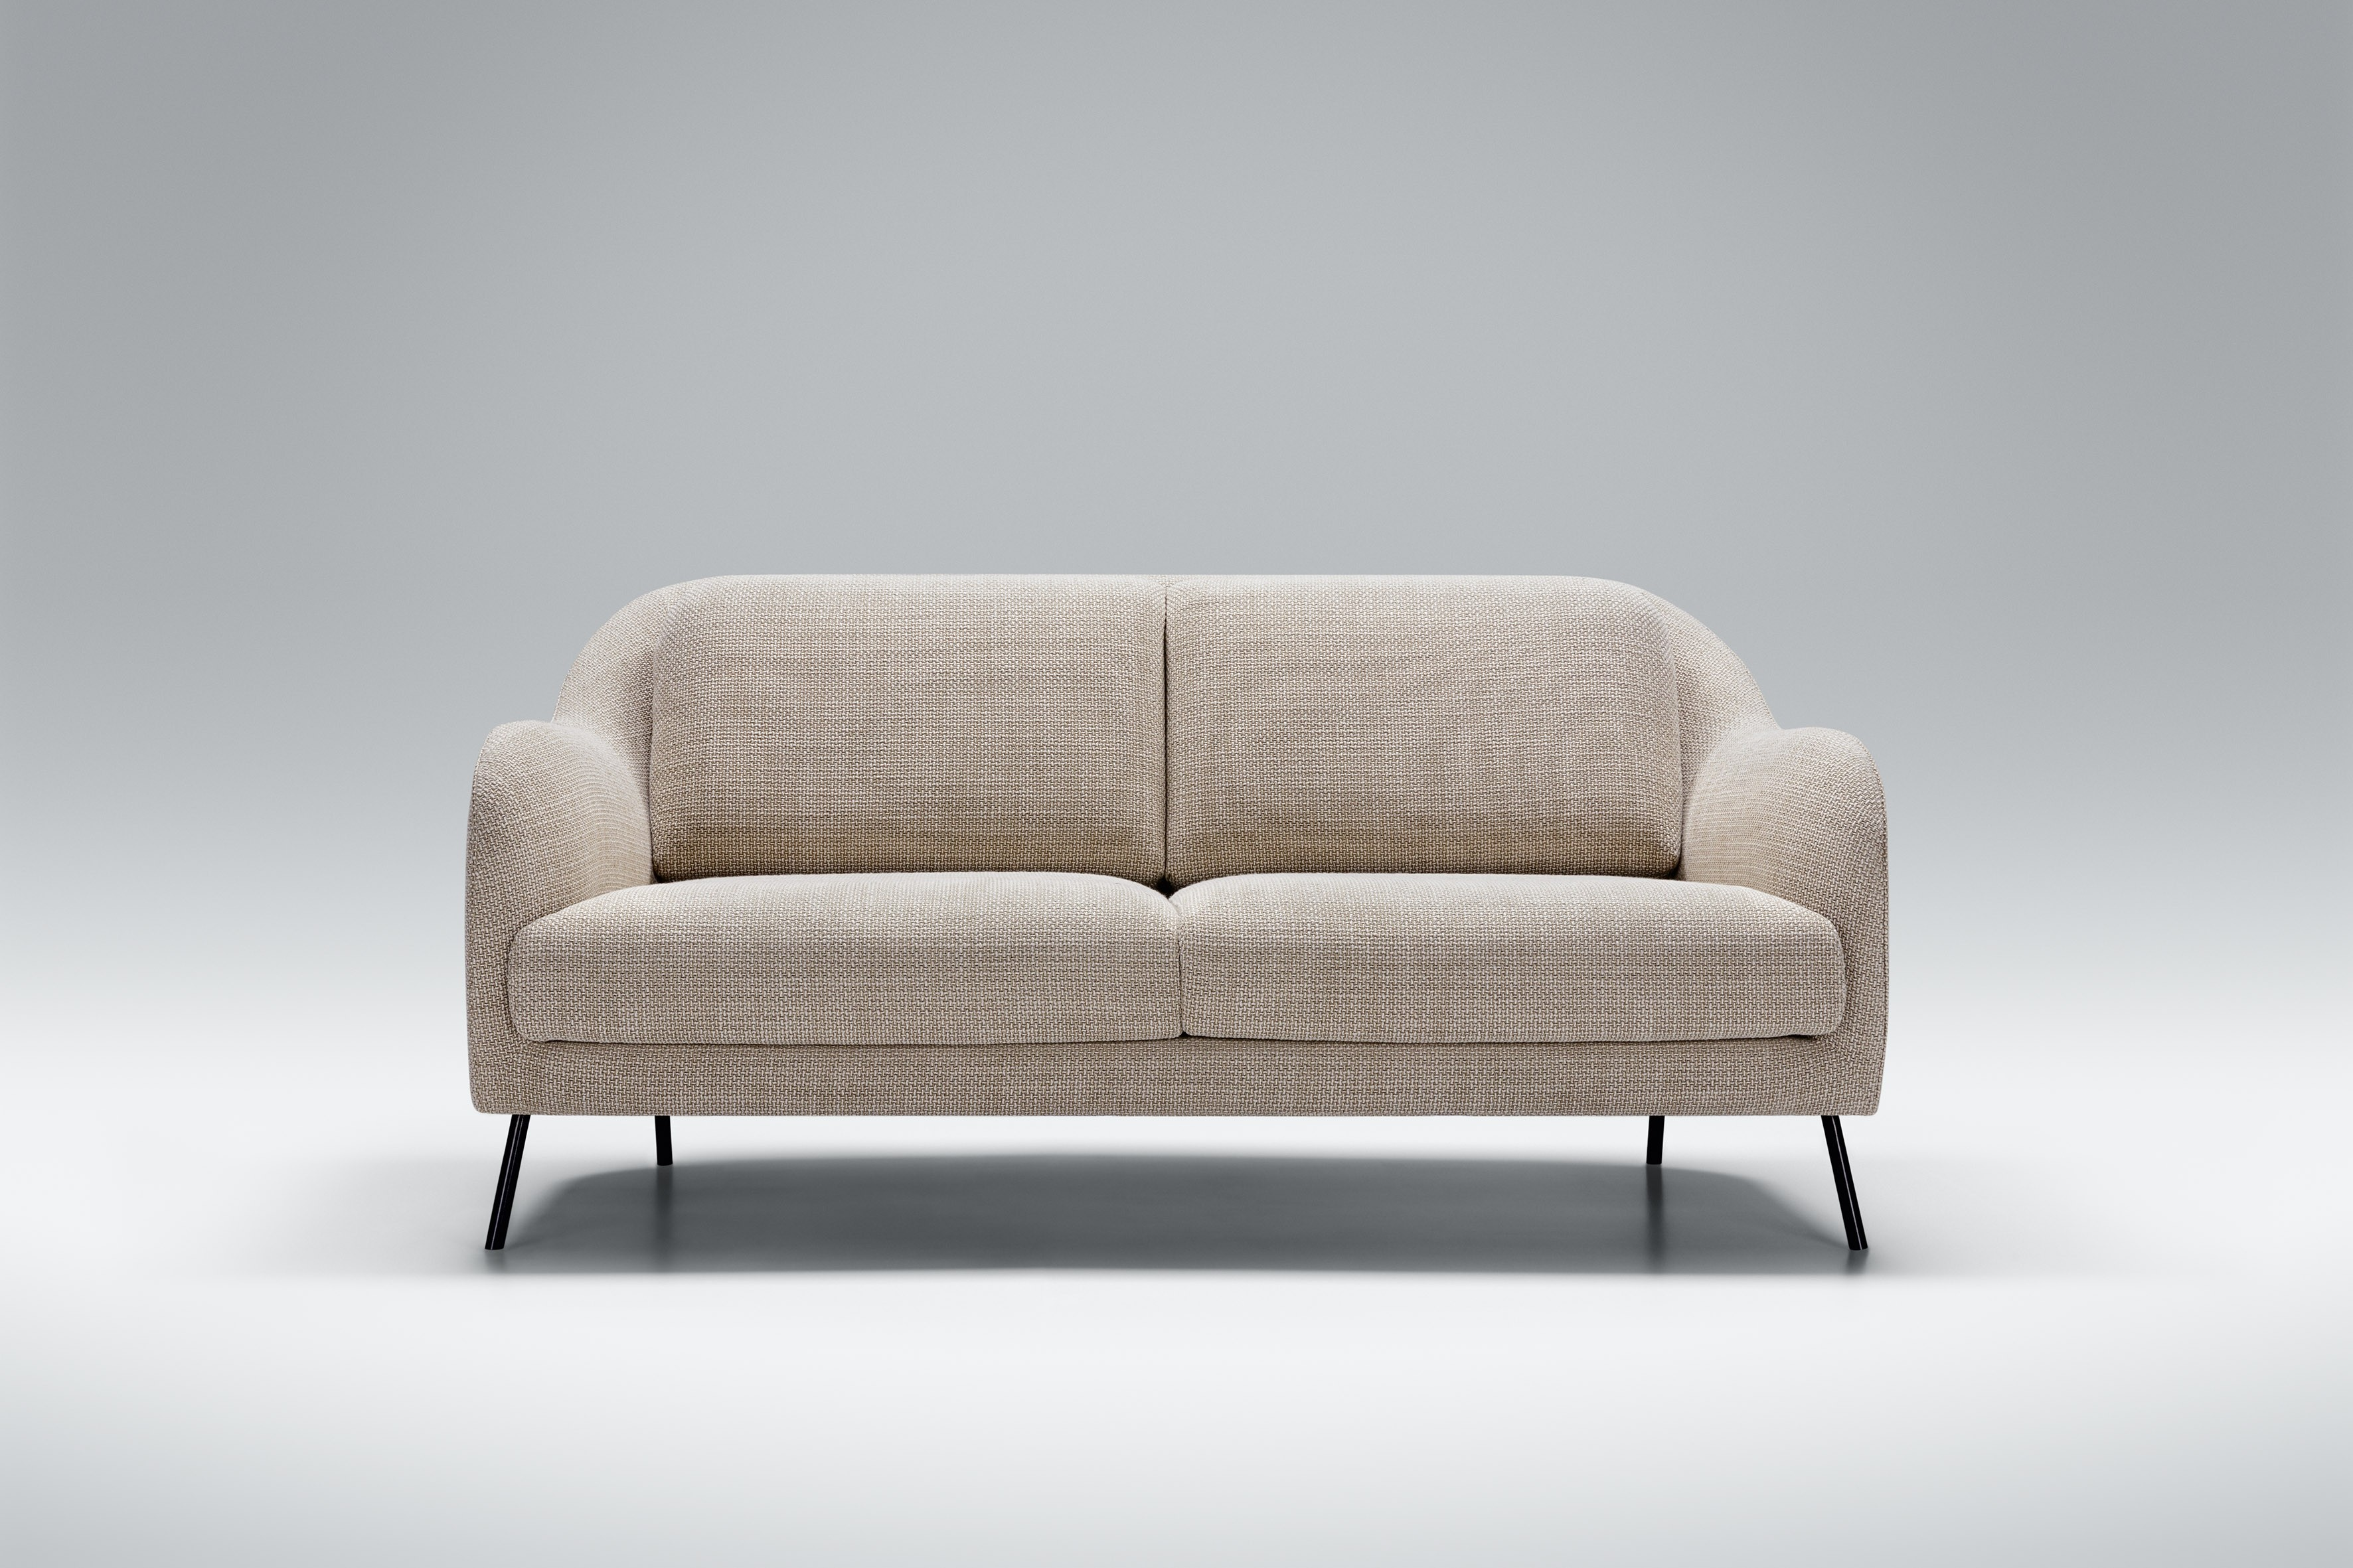 Ibsen 2 seater sofa